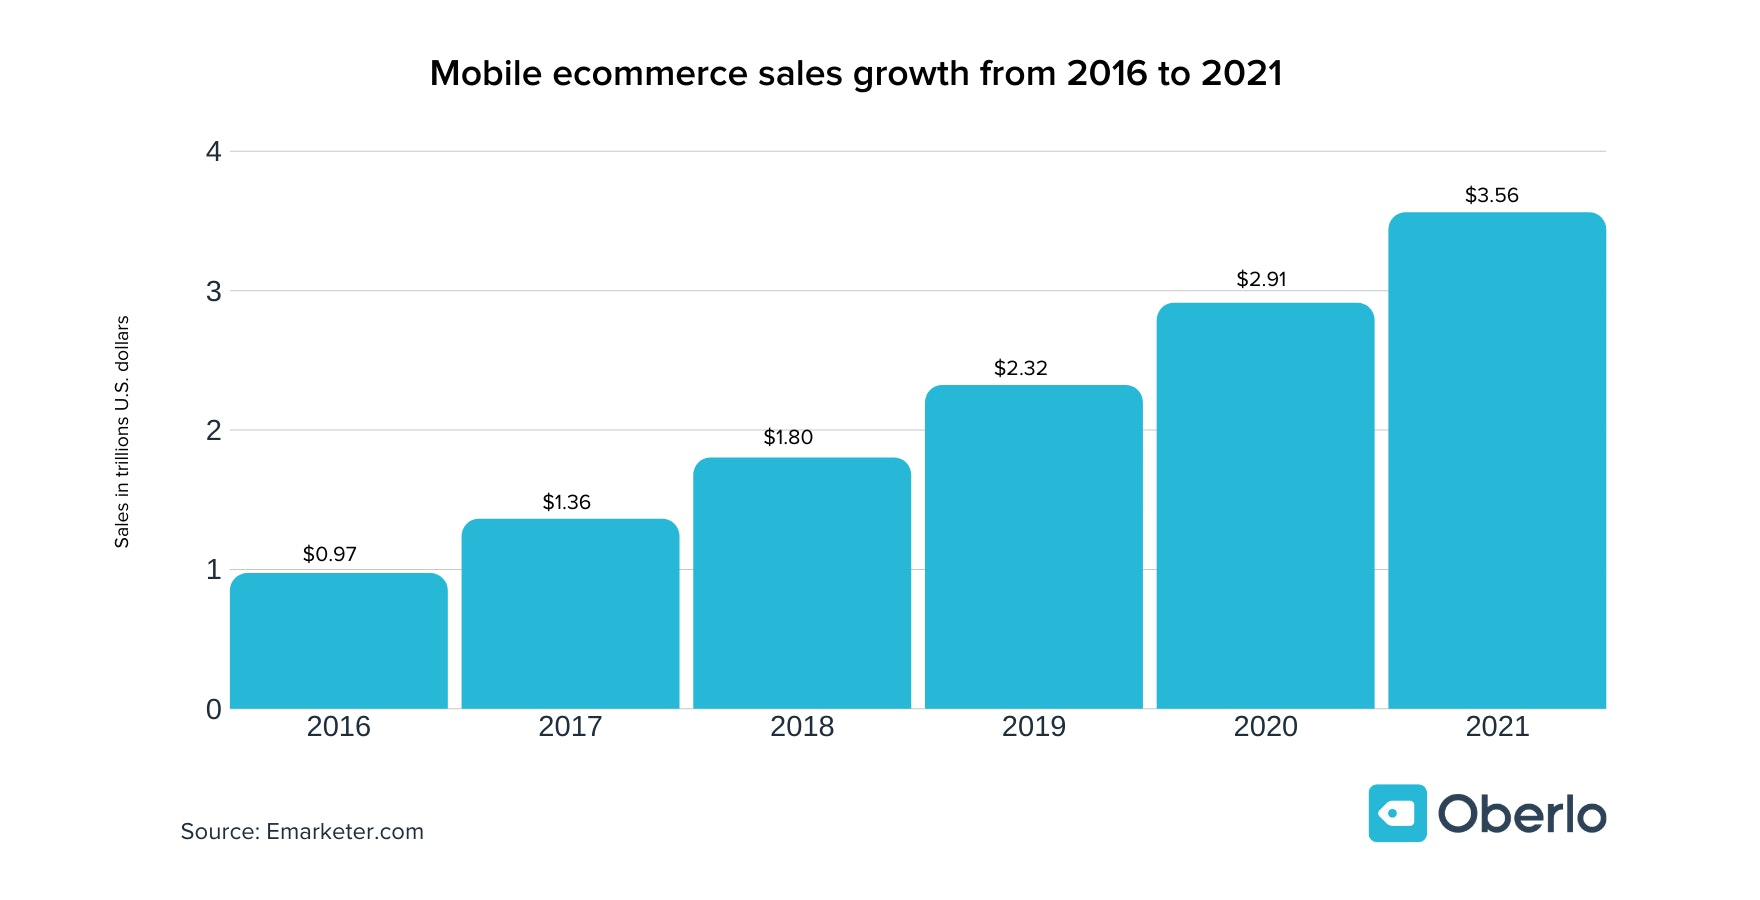 Mobile ecommerce sales growth